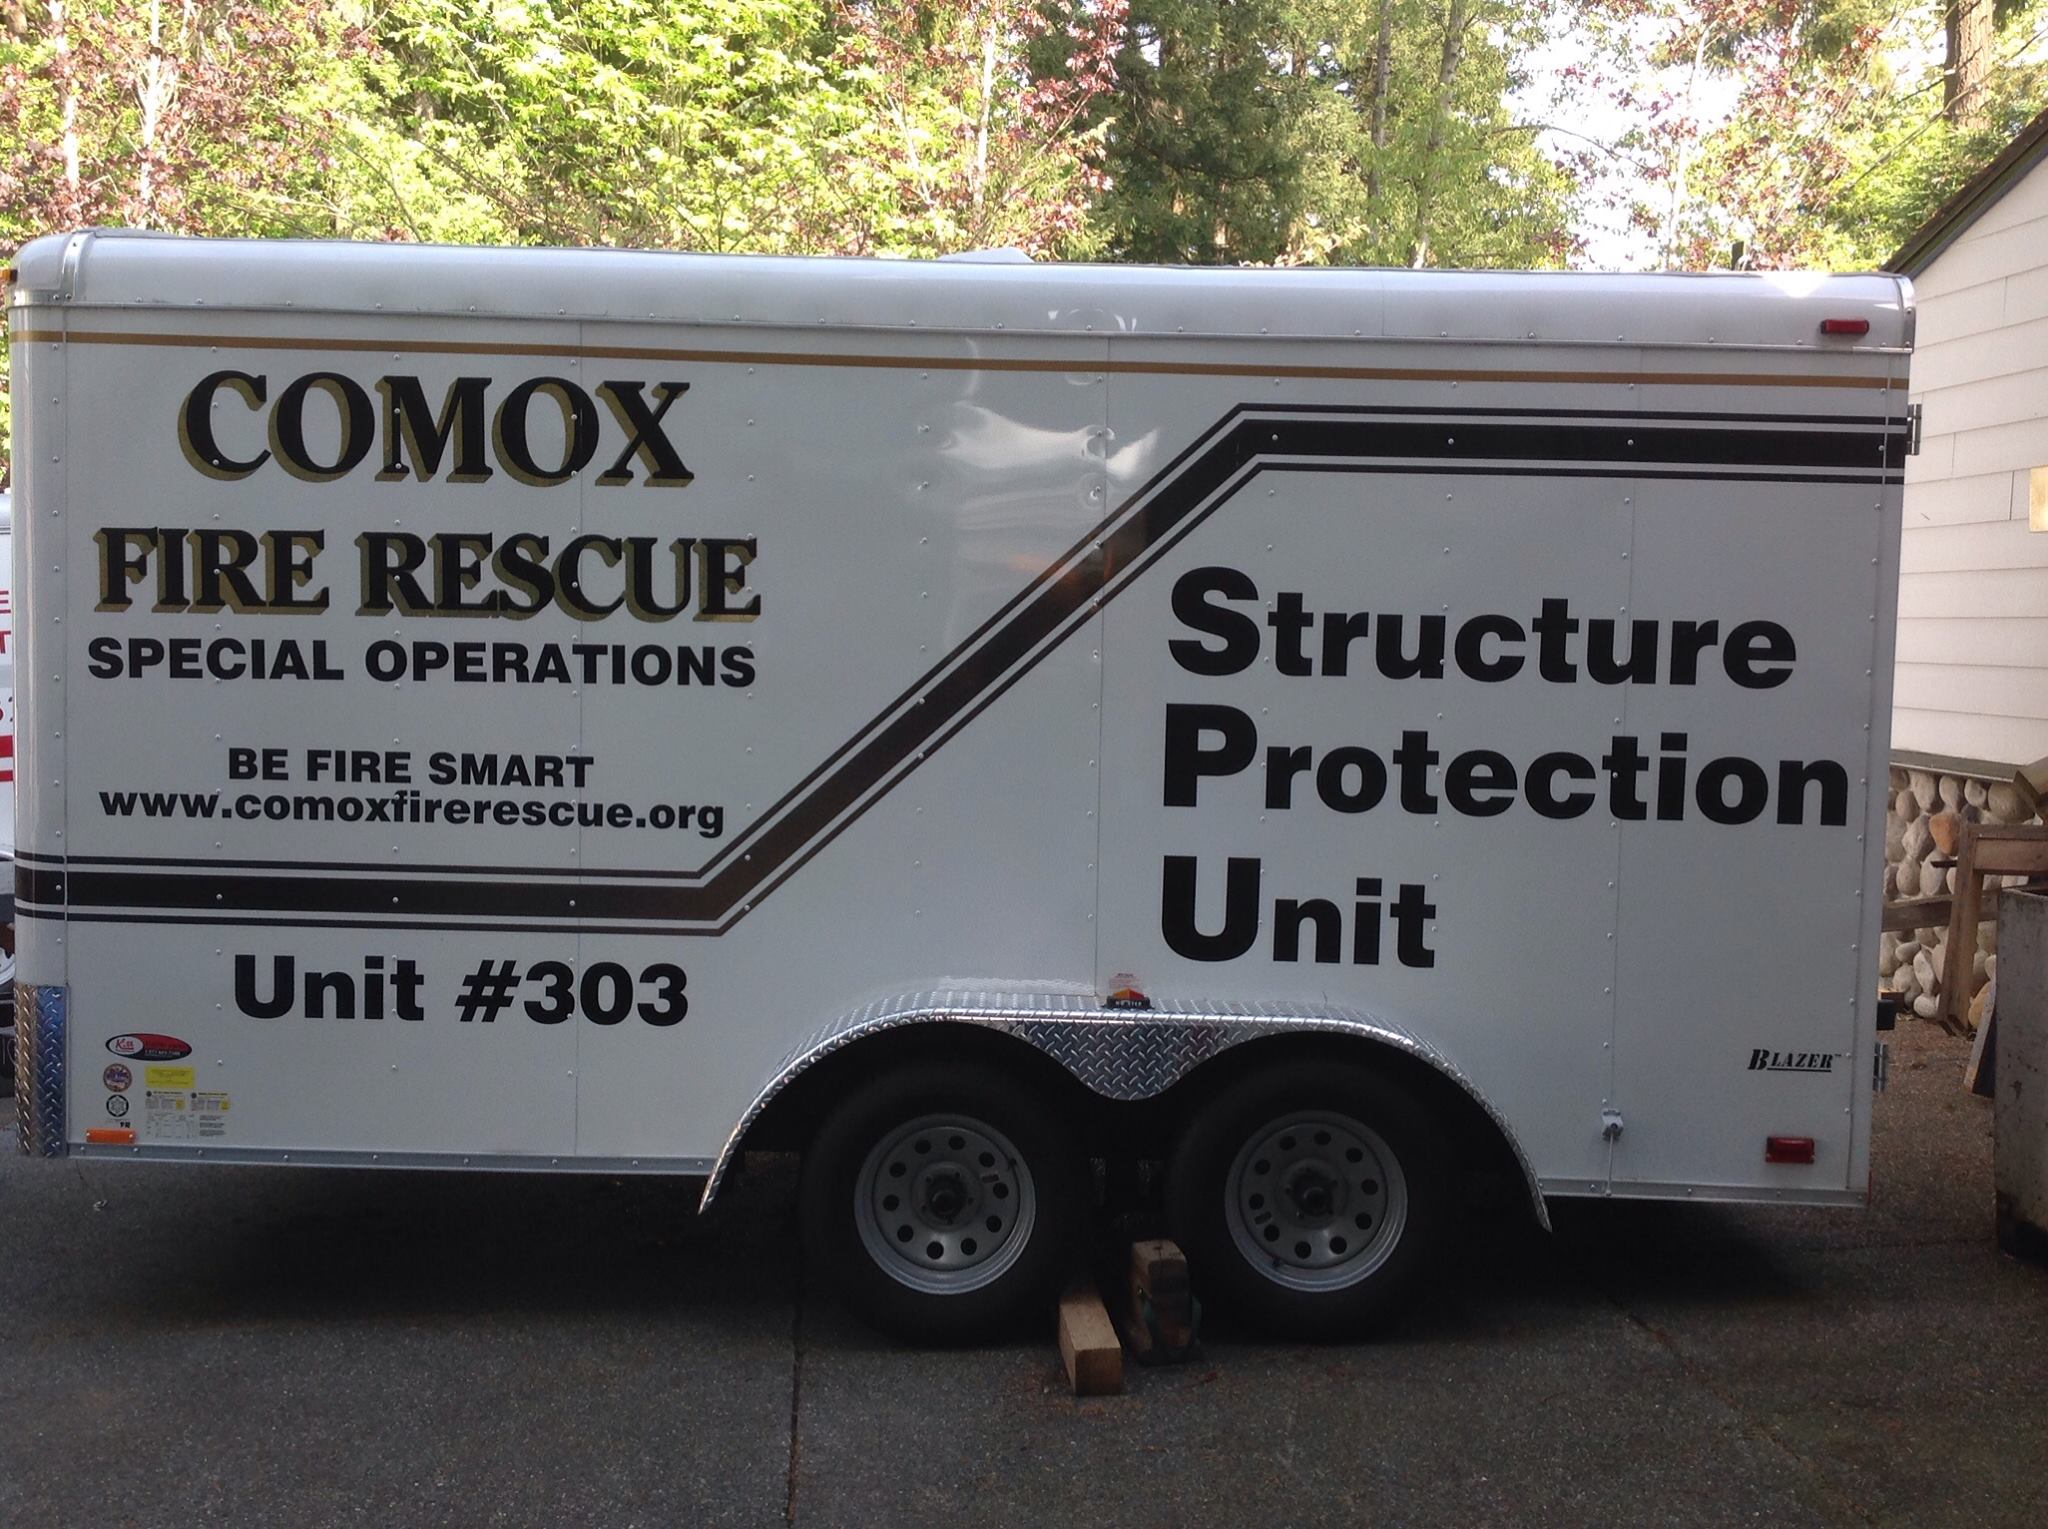 comox-fire-rescue-structural-protection-unit-2.jpg